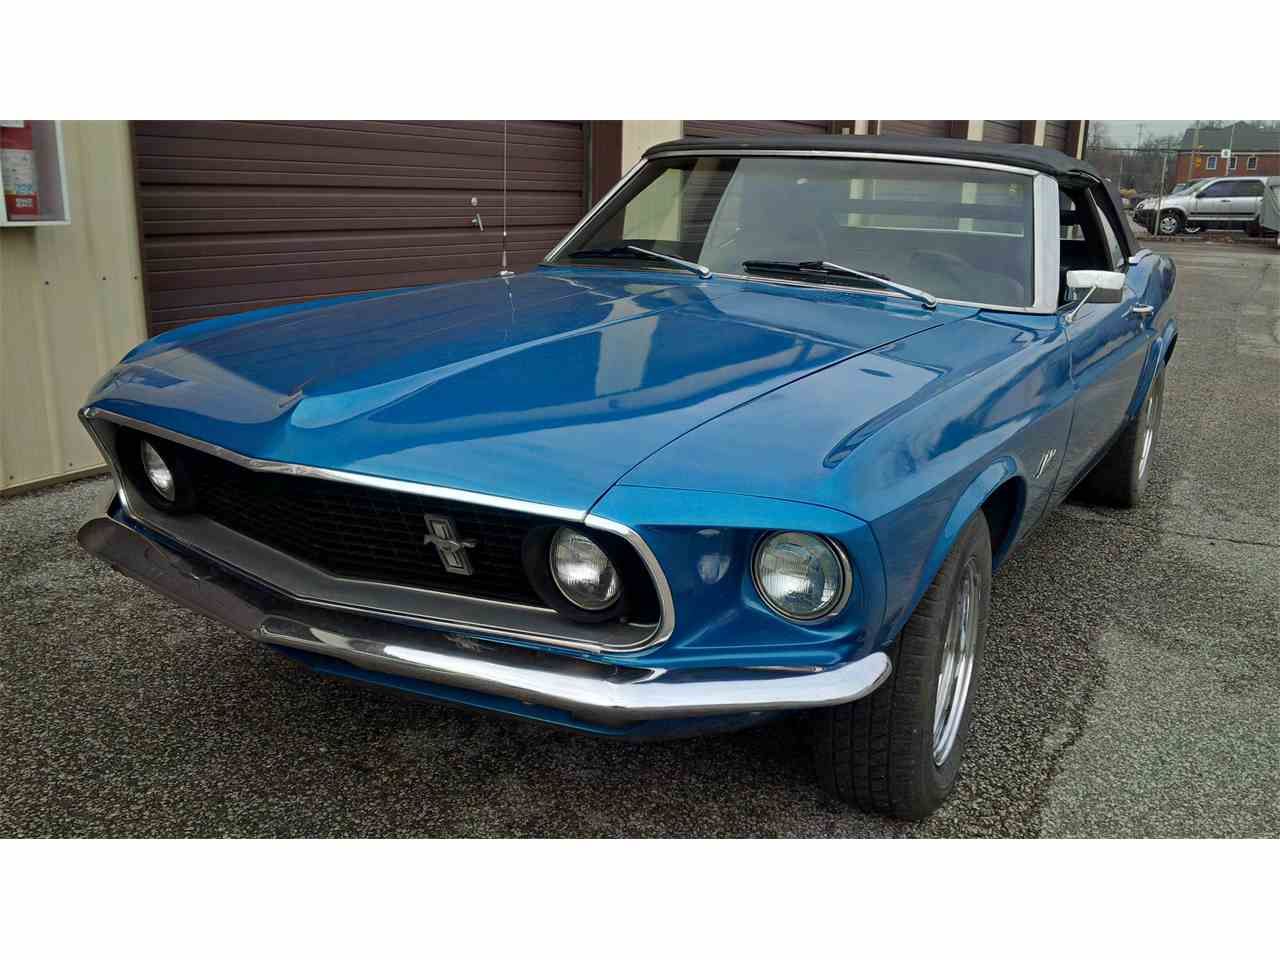 Large Picture of 1969 Mustang located in Ohio - $24,900.00 Offered by Benza Motors - L1HU